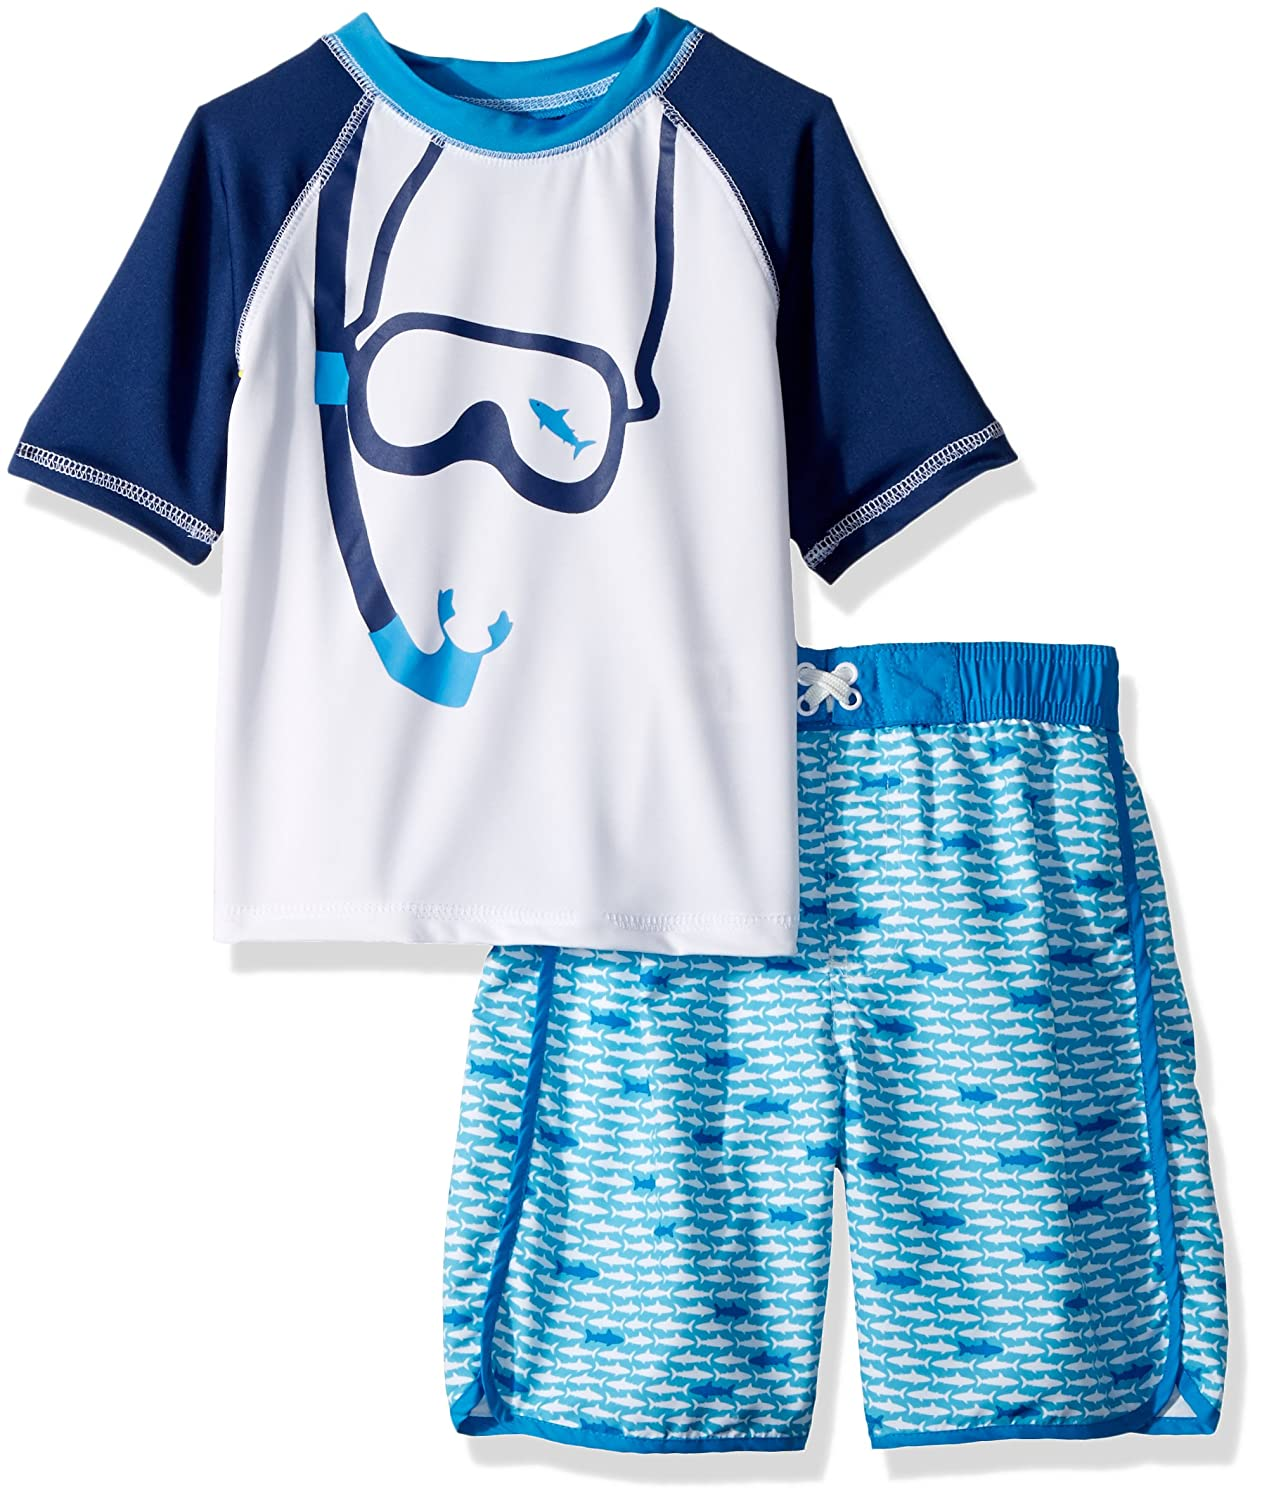 iXtreme Boys' Printed Rashguard Sets